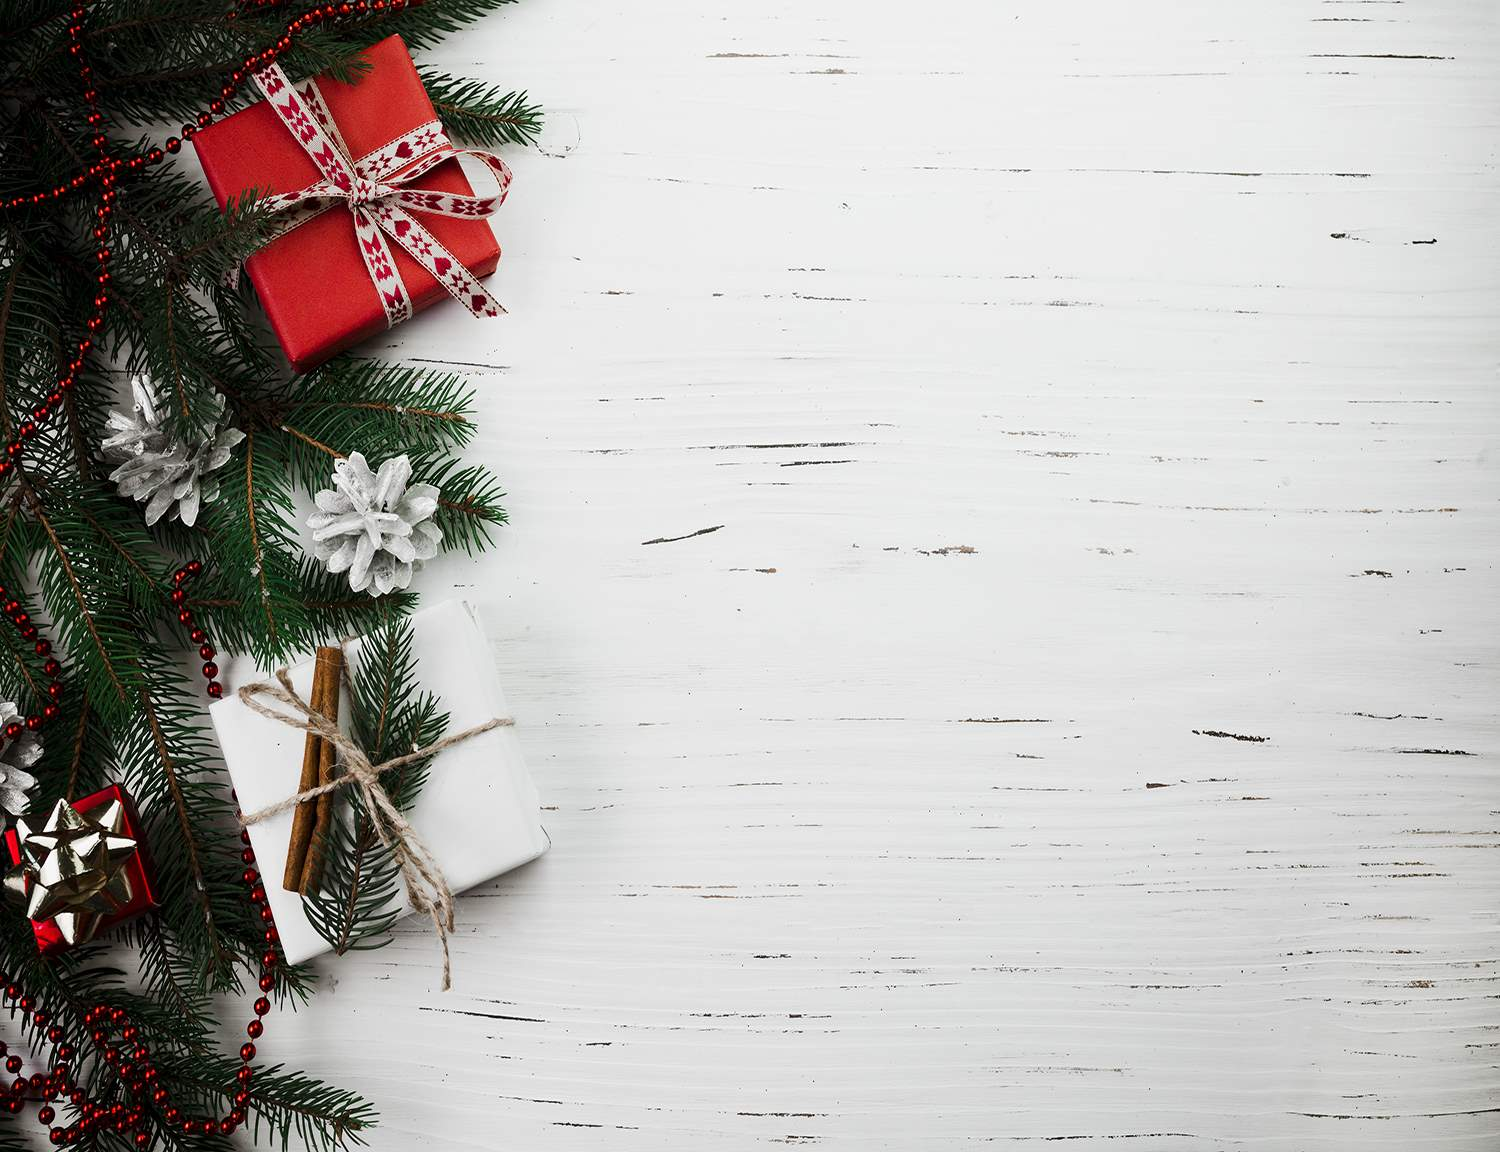 background-holiday-banner-1